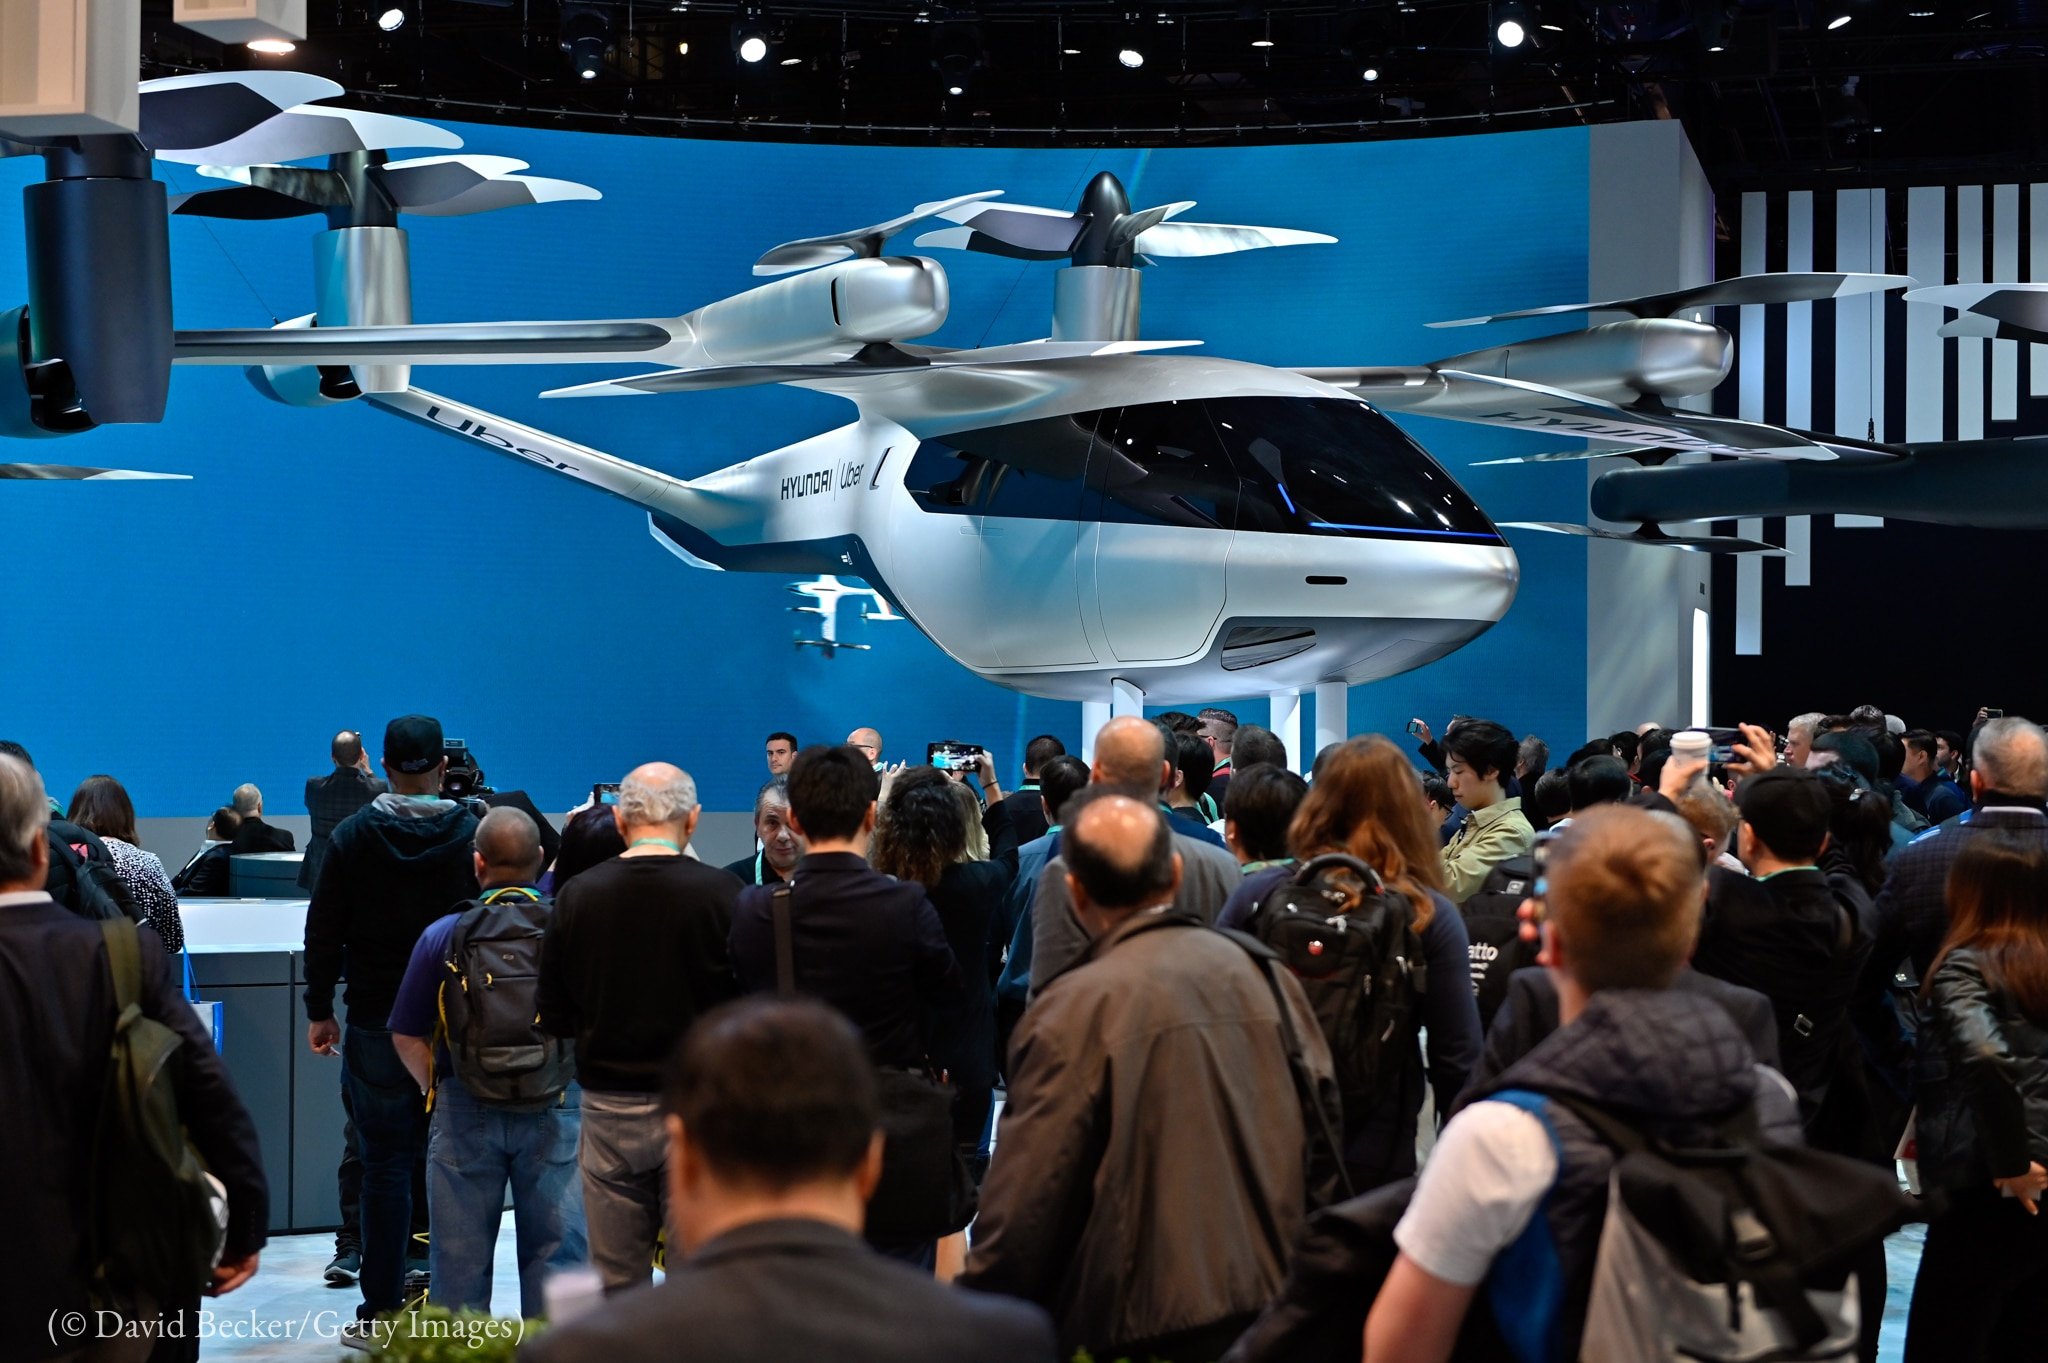 Helicopter on display before crowd (© David Becker/Getty Images)